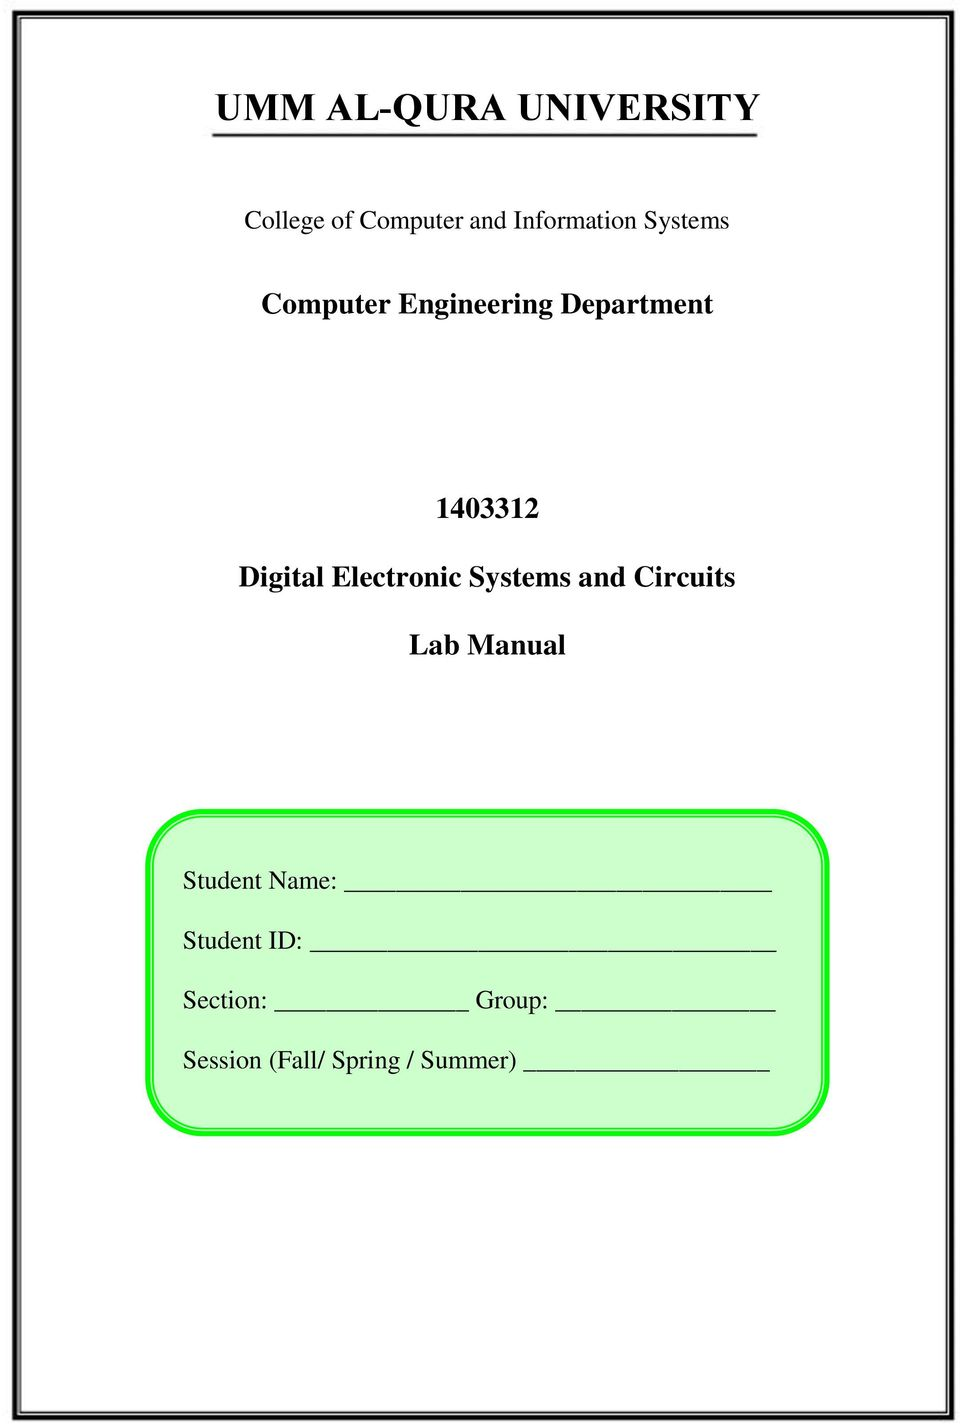 Umm Al Qura University Pdf Electronic Circuit I Lab Manual 1403312 Digital Systems And Circuits